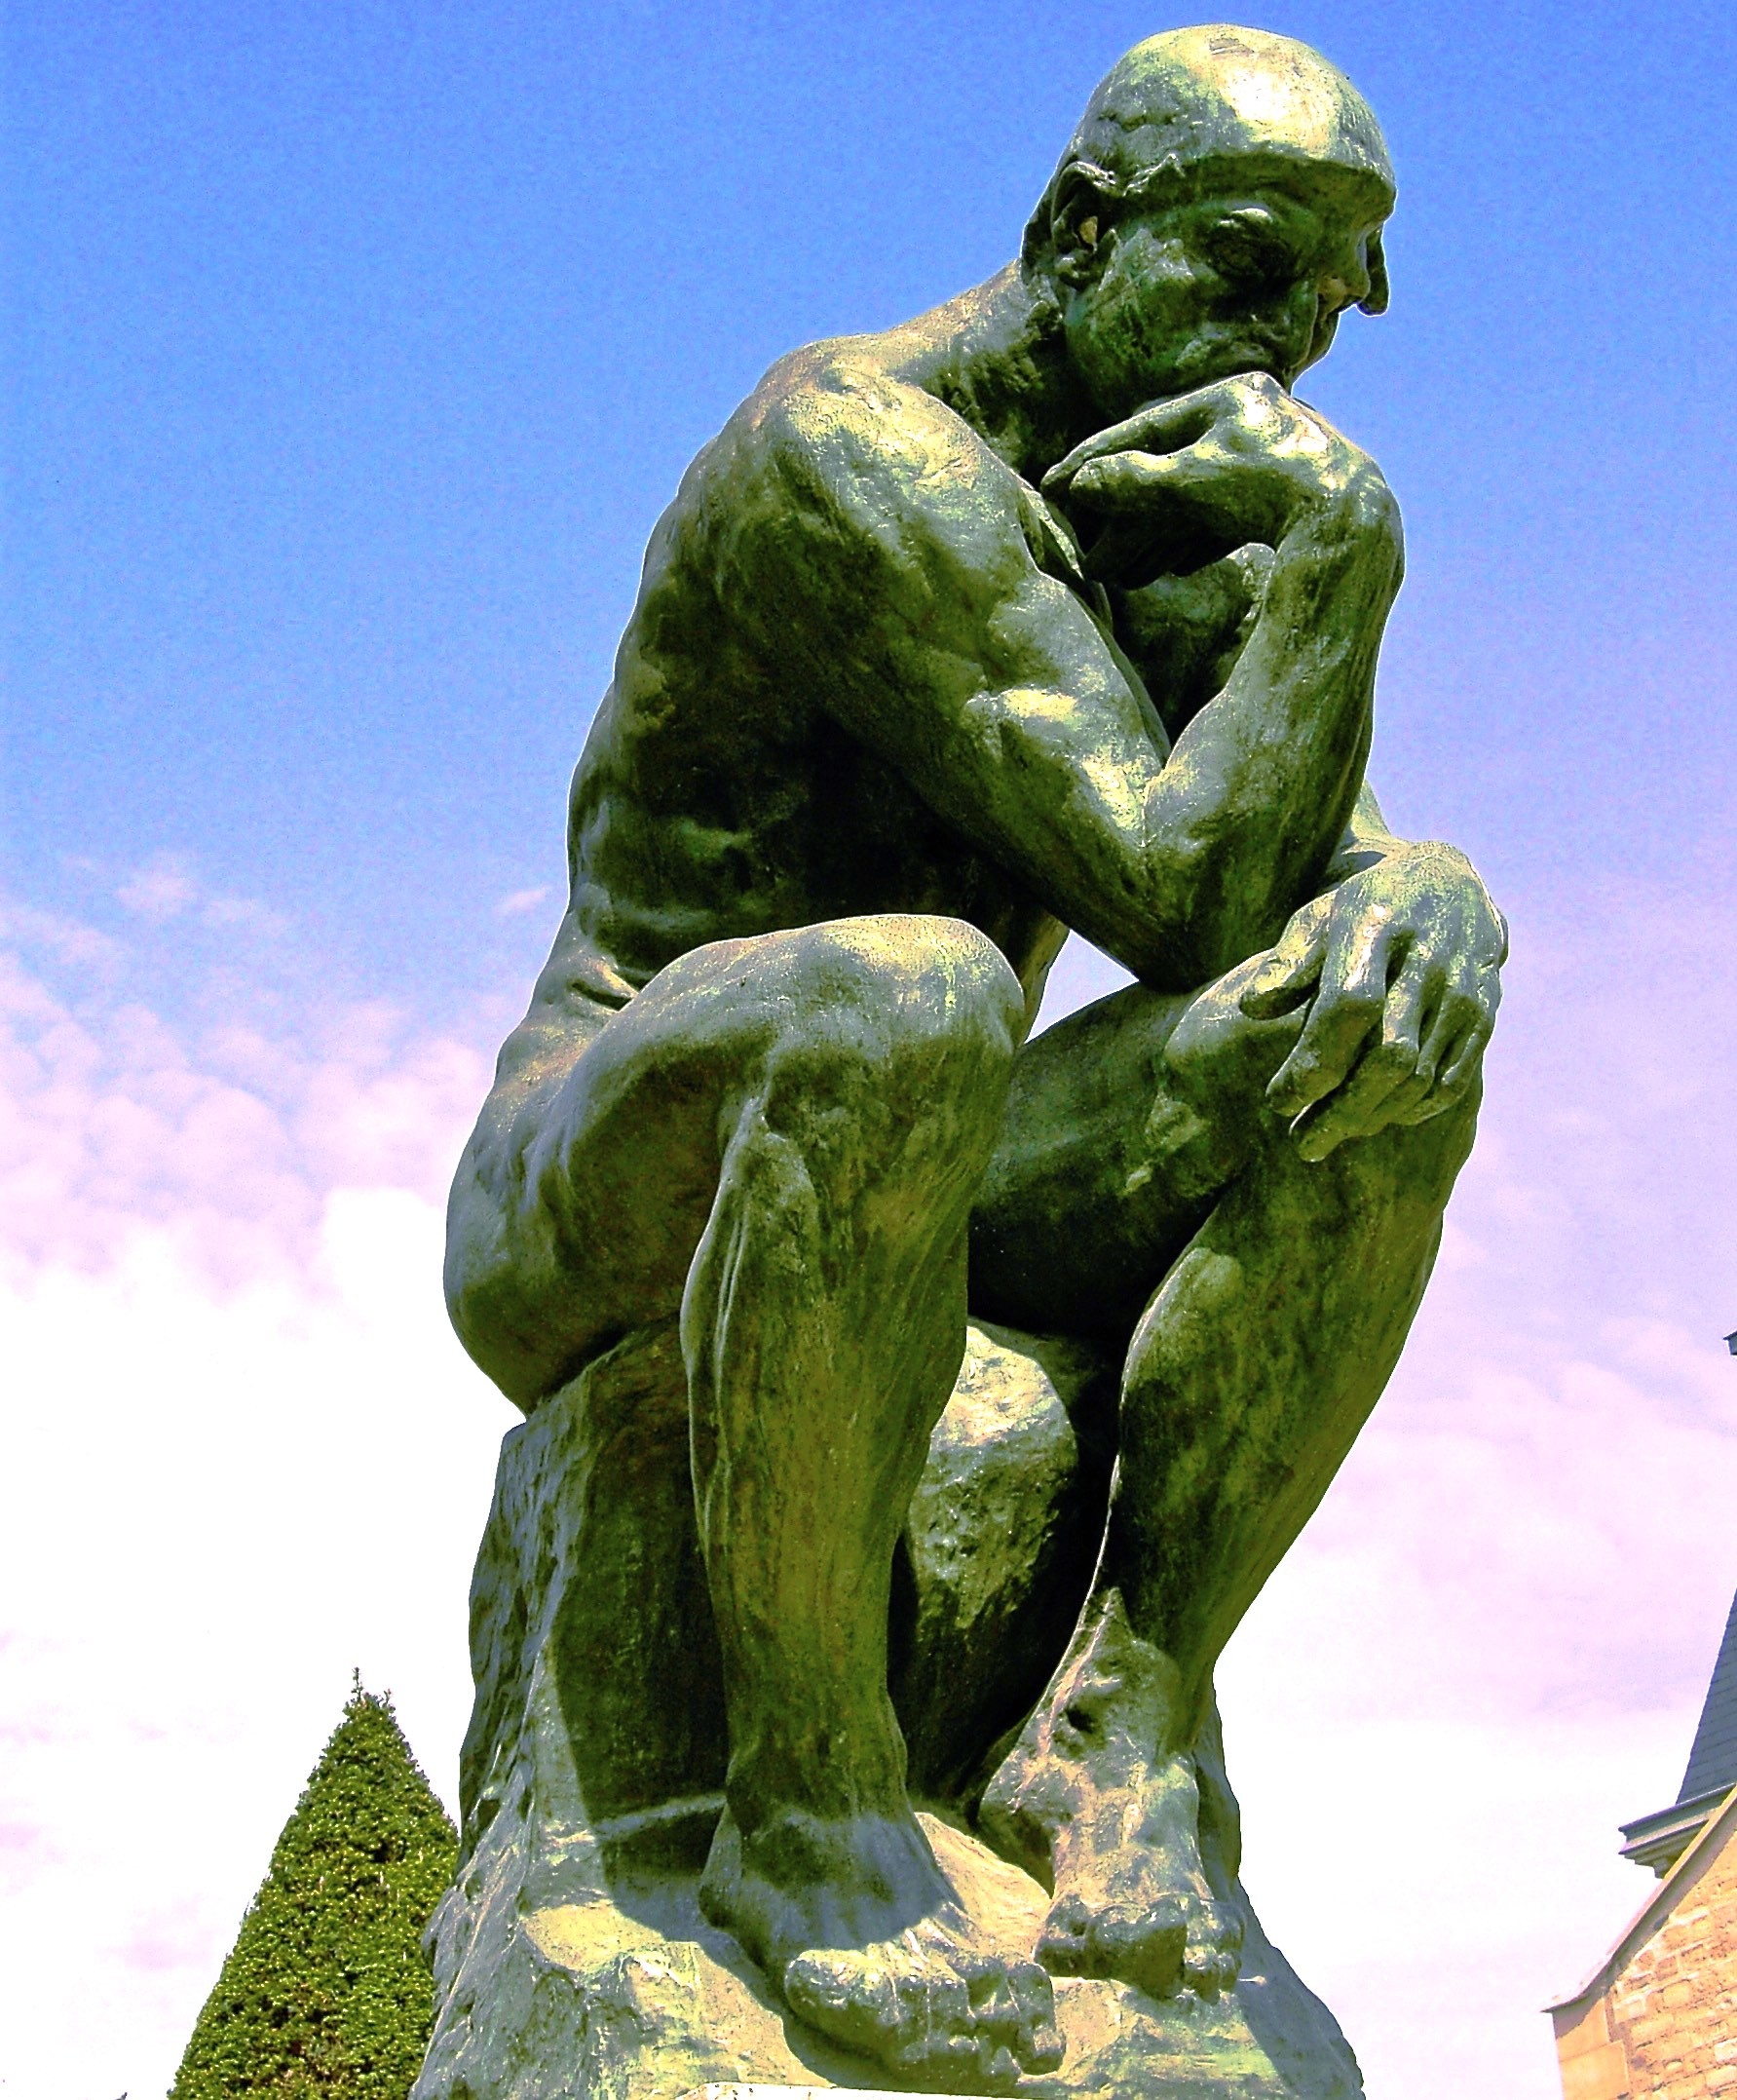 The Thinker Thinking About How to Involve Others in Decisions